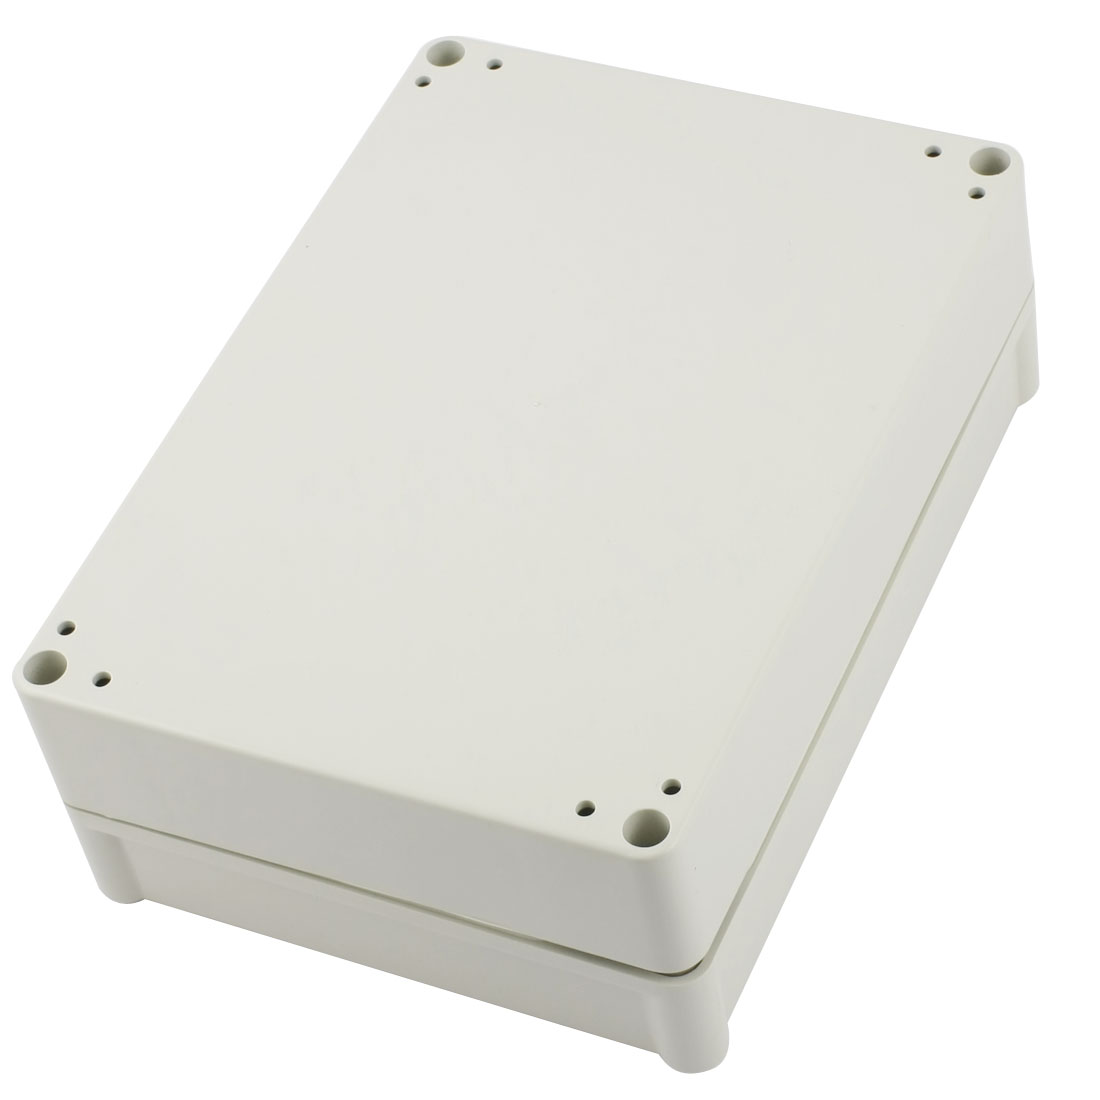 Waterproof Light Gray Plastic Sealed Electric Junction Enclose Box Power Protection Case 180mm x 130mm x 65mm